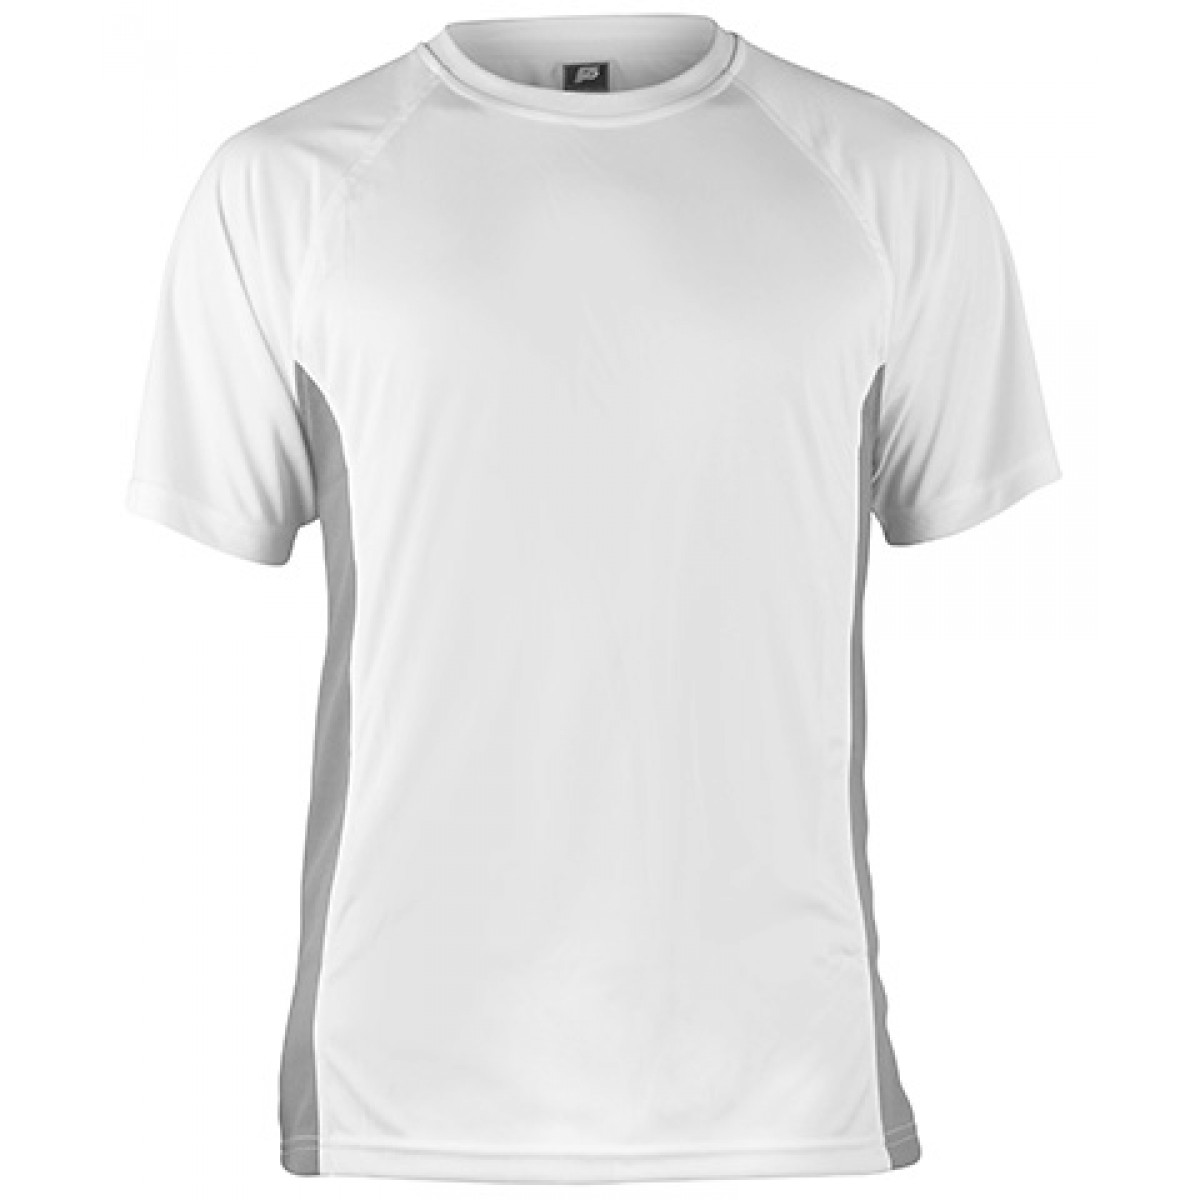 Short Sleeves Performance With Side Insert-White/Gray-YL